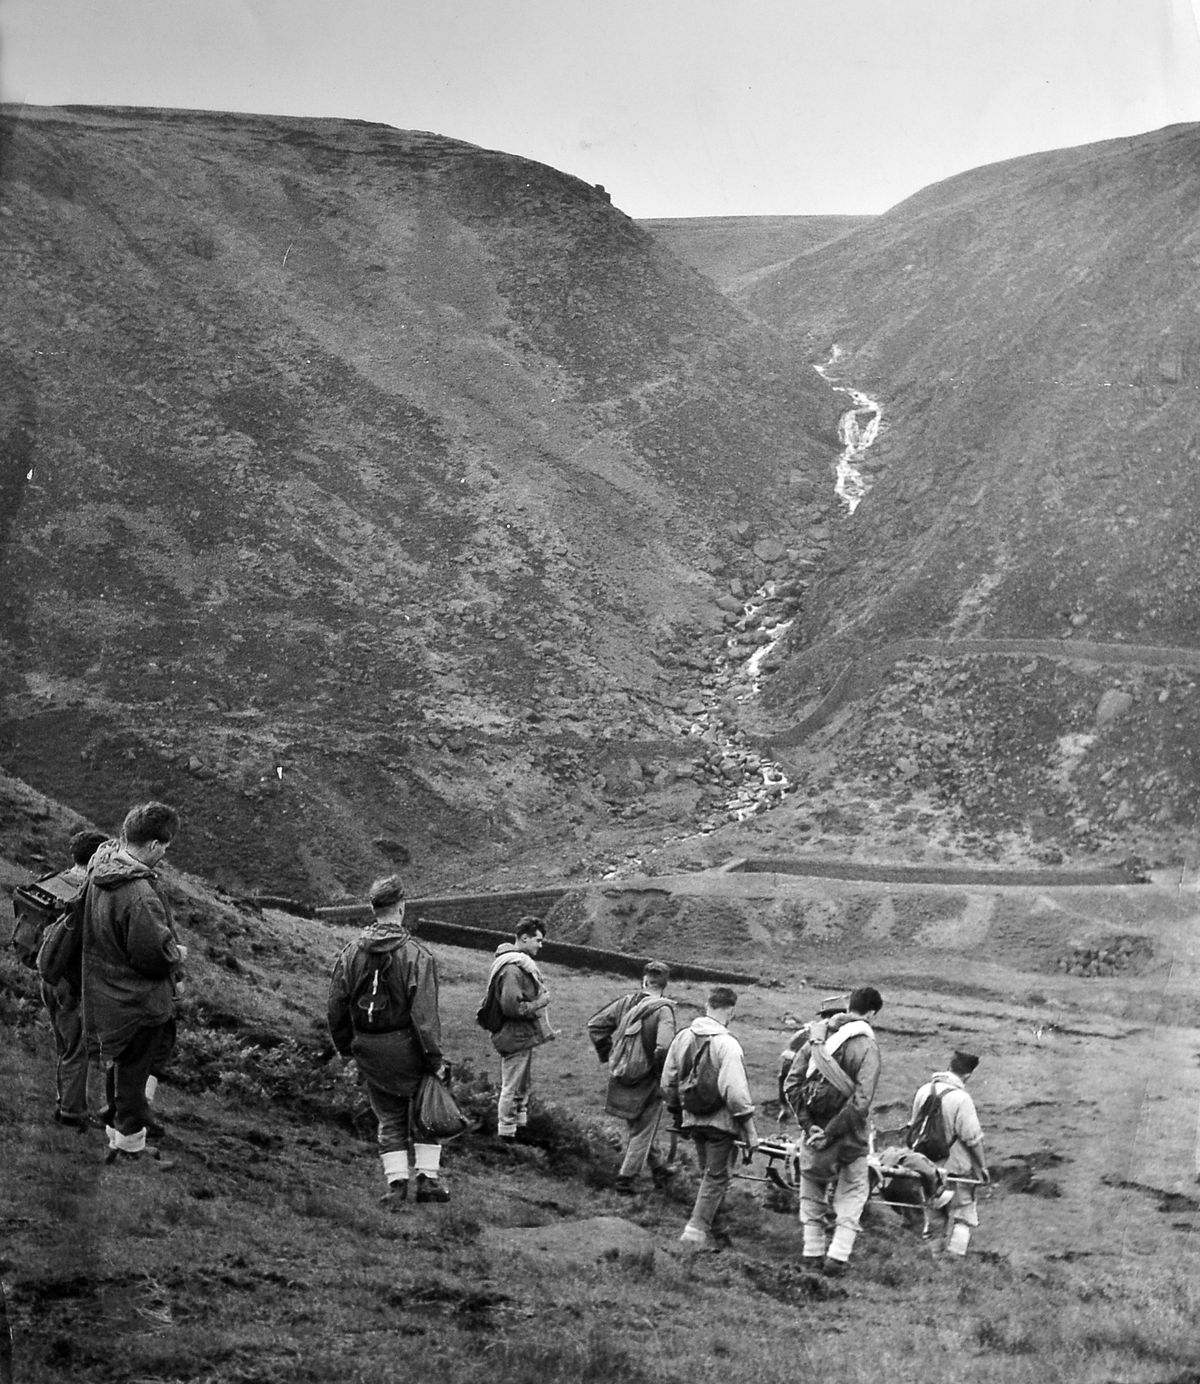 The mountain rescue unit, with stretcher and rescue equipment, set off on a mission in the Peak District in 1960